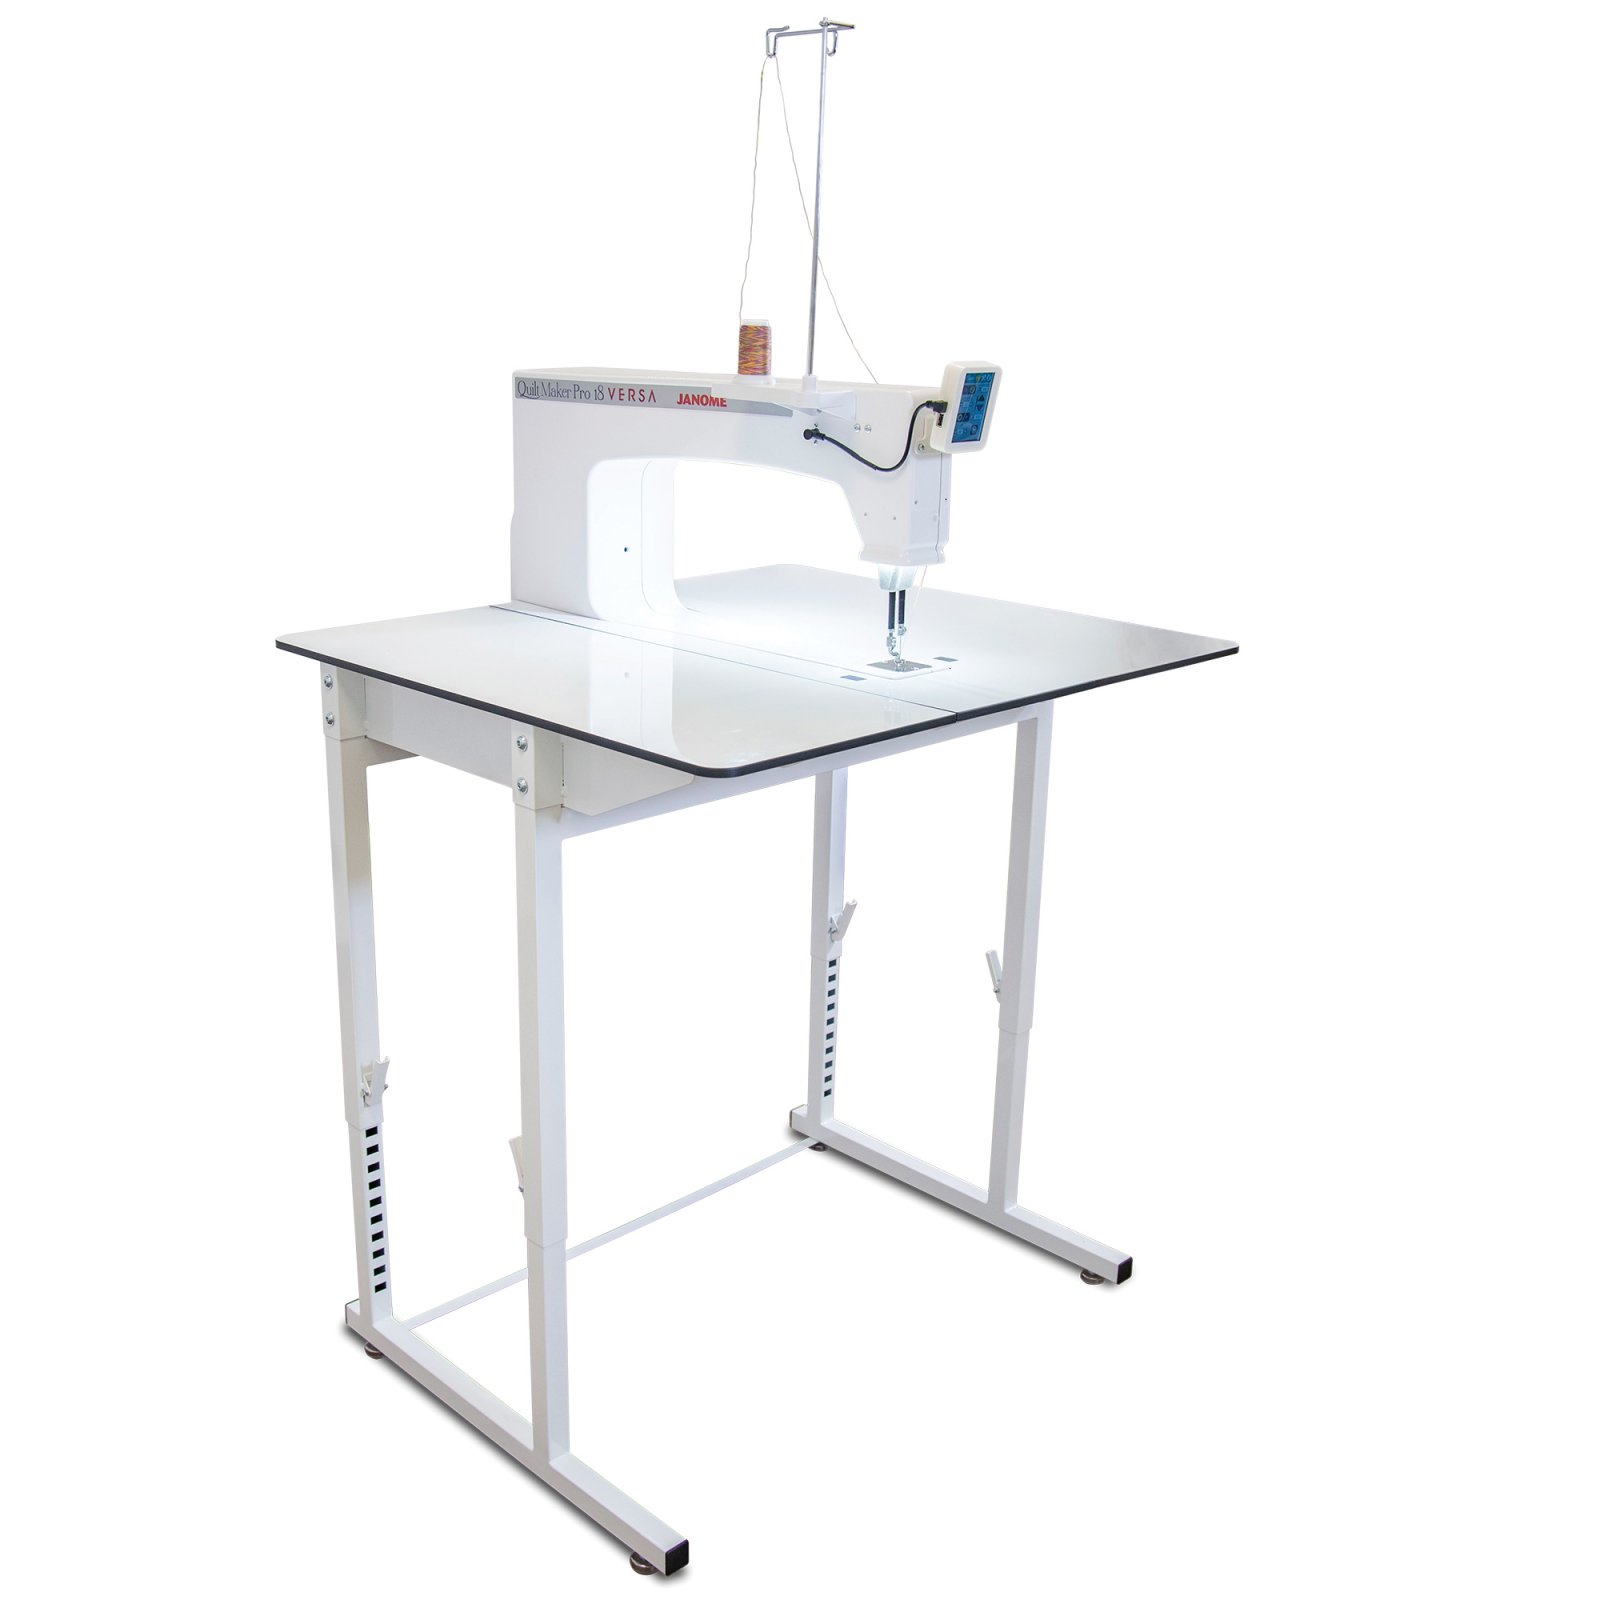 Quilt Maker Pro 18 Versa - Stationary Long Arm with Built-in Stitch Regulator